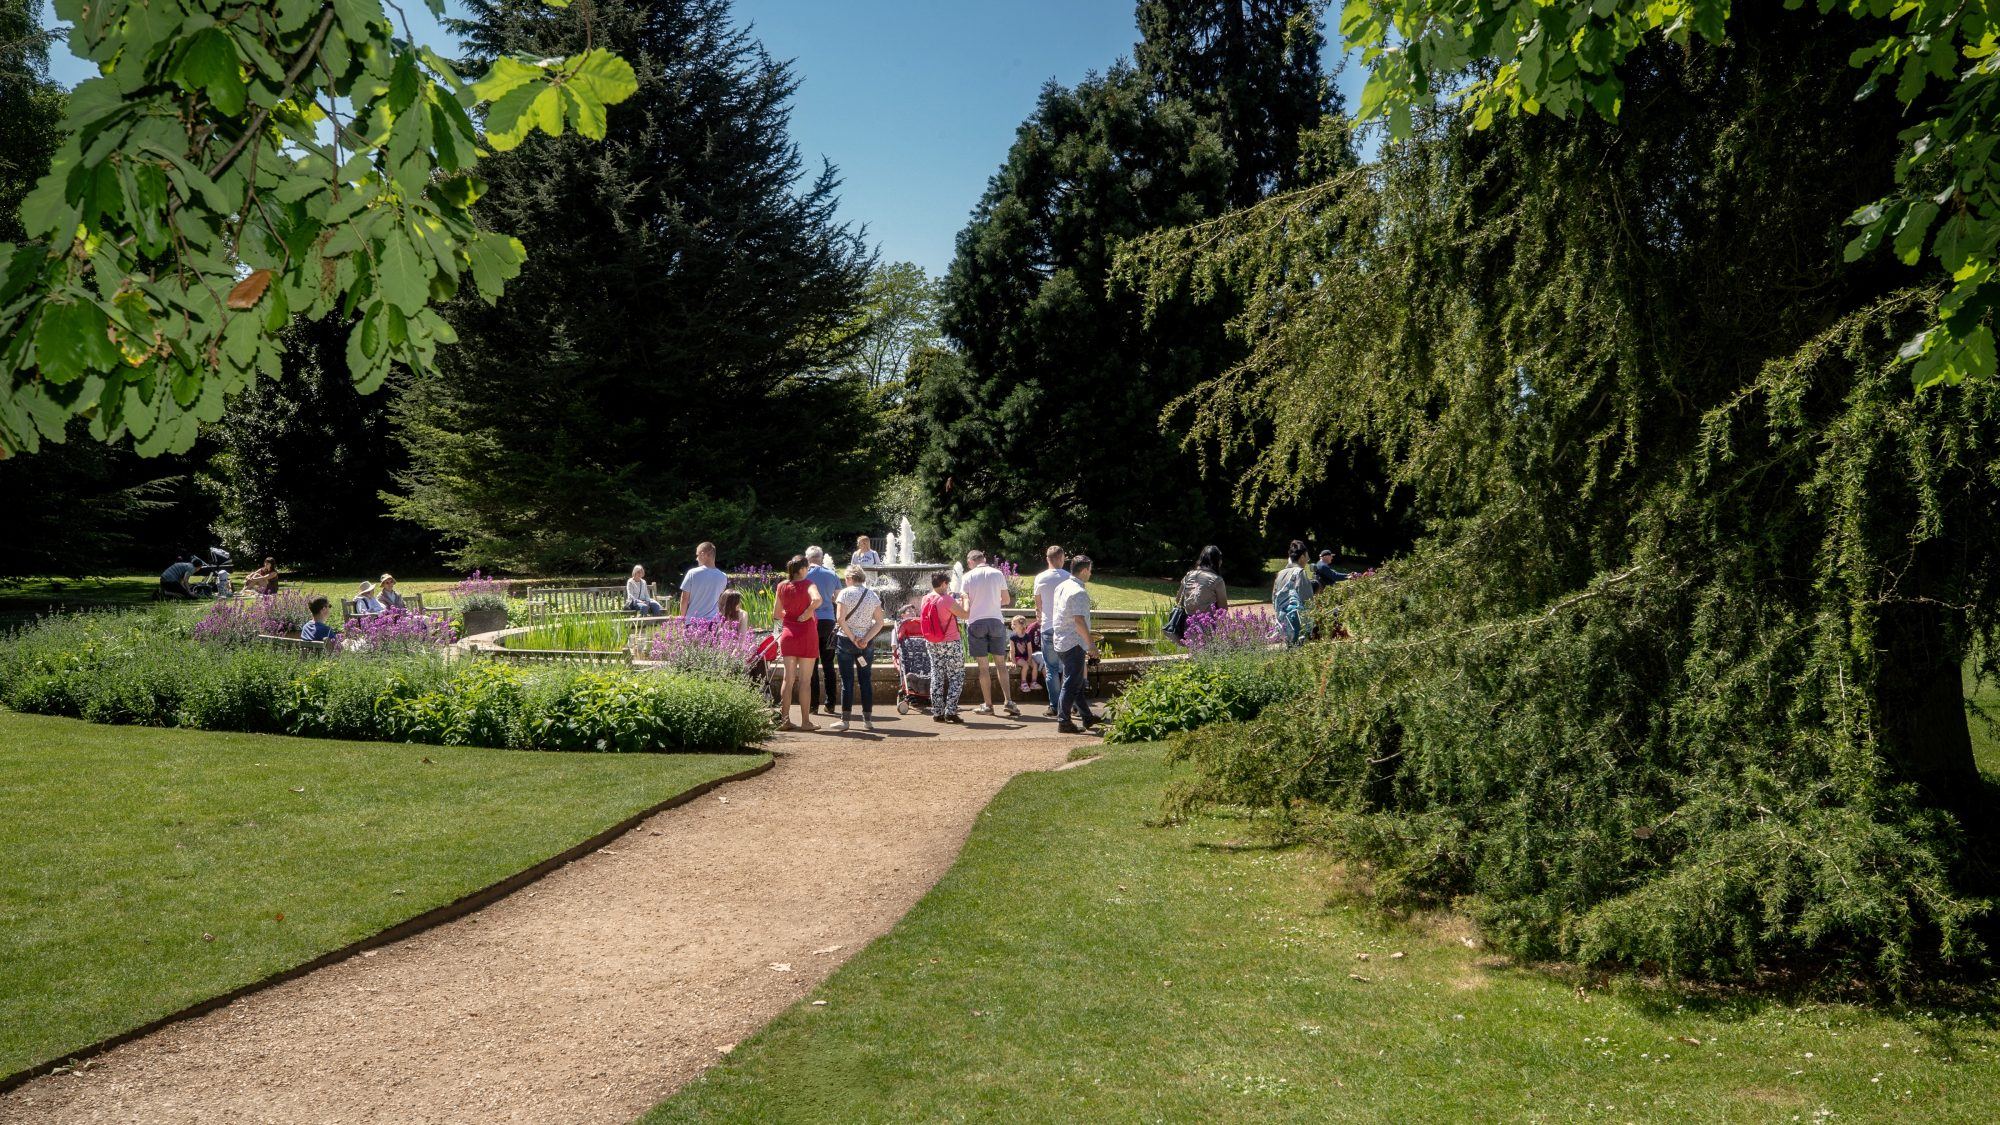 Visitors enjoying the main walk and iconic fountain, designed by David Mellor (1930-2009).